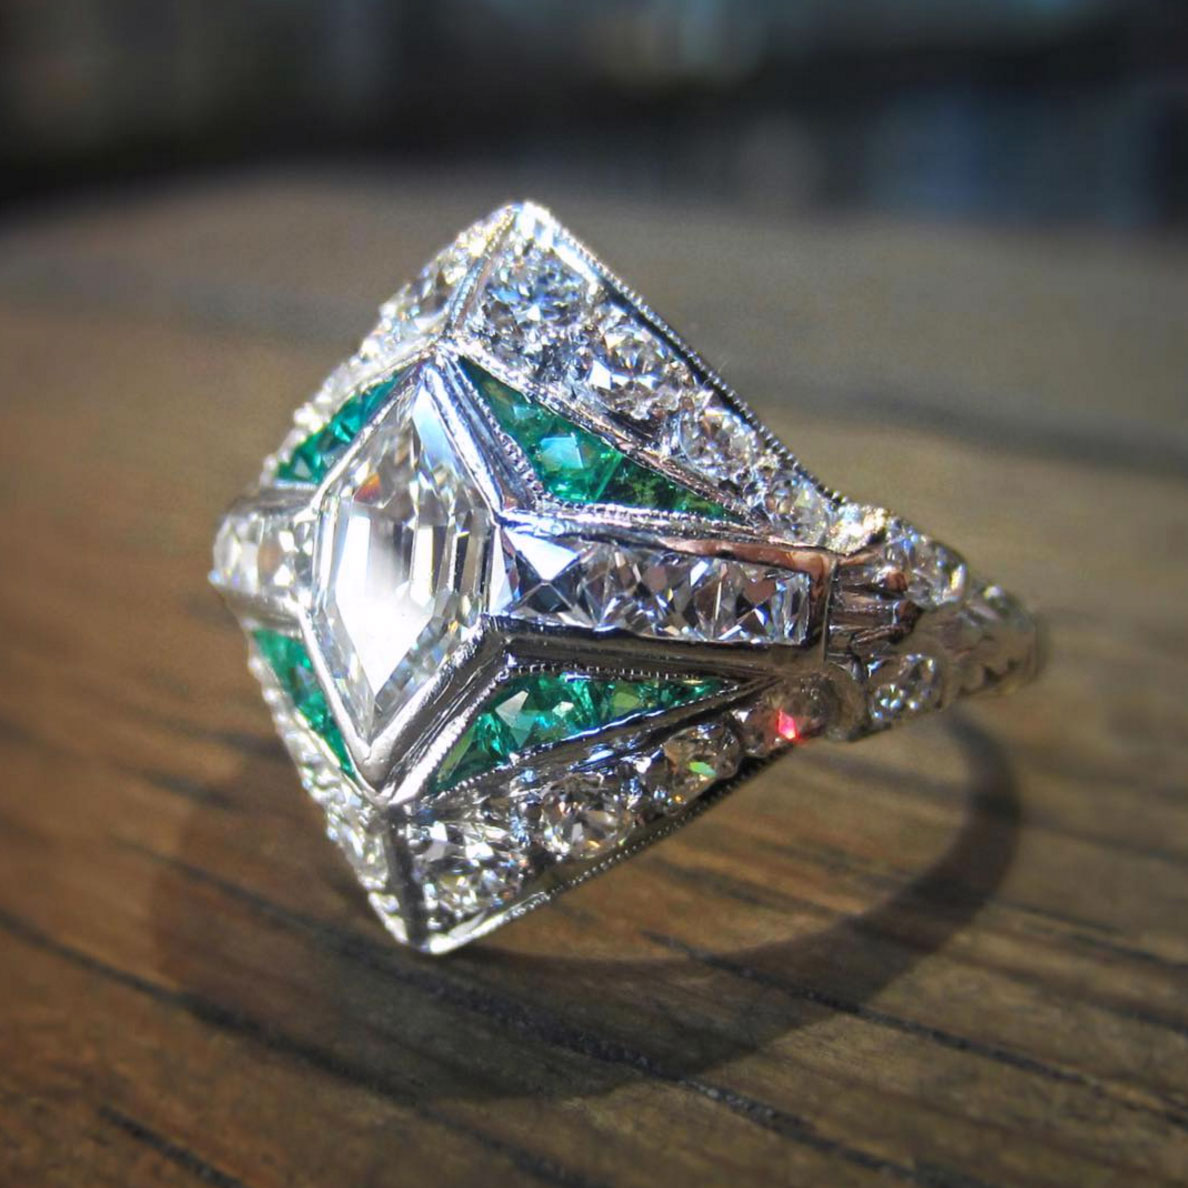 Doyle & Doyle vintage diamond emerald engagement ring.